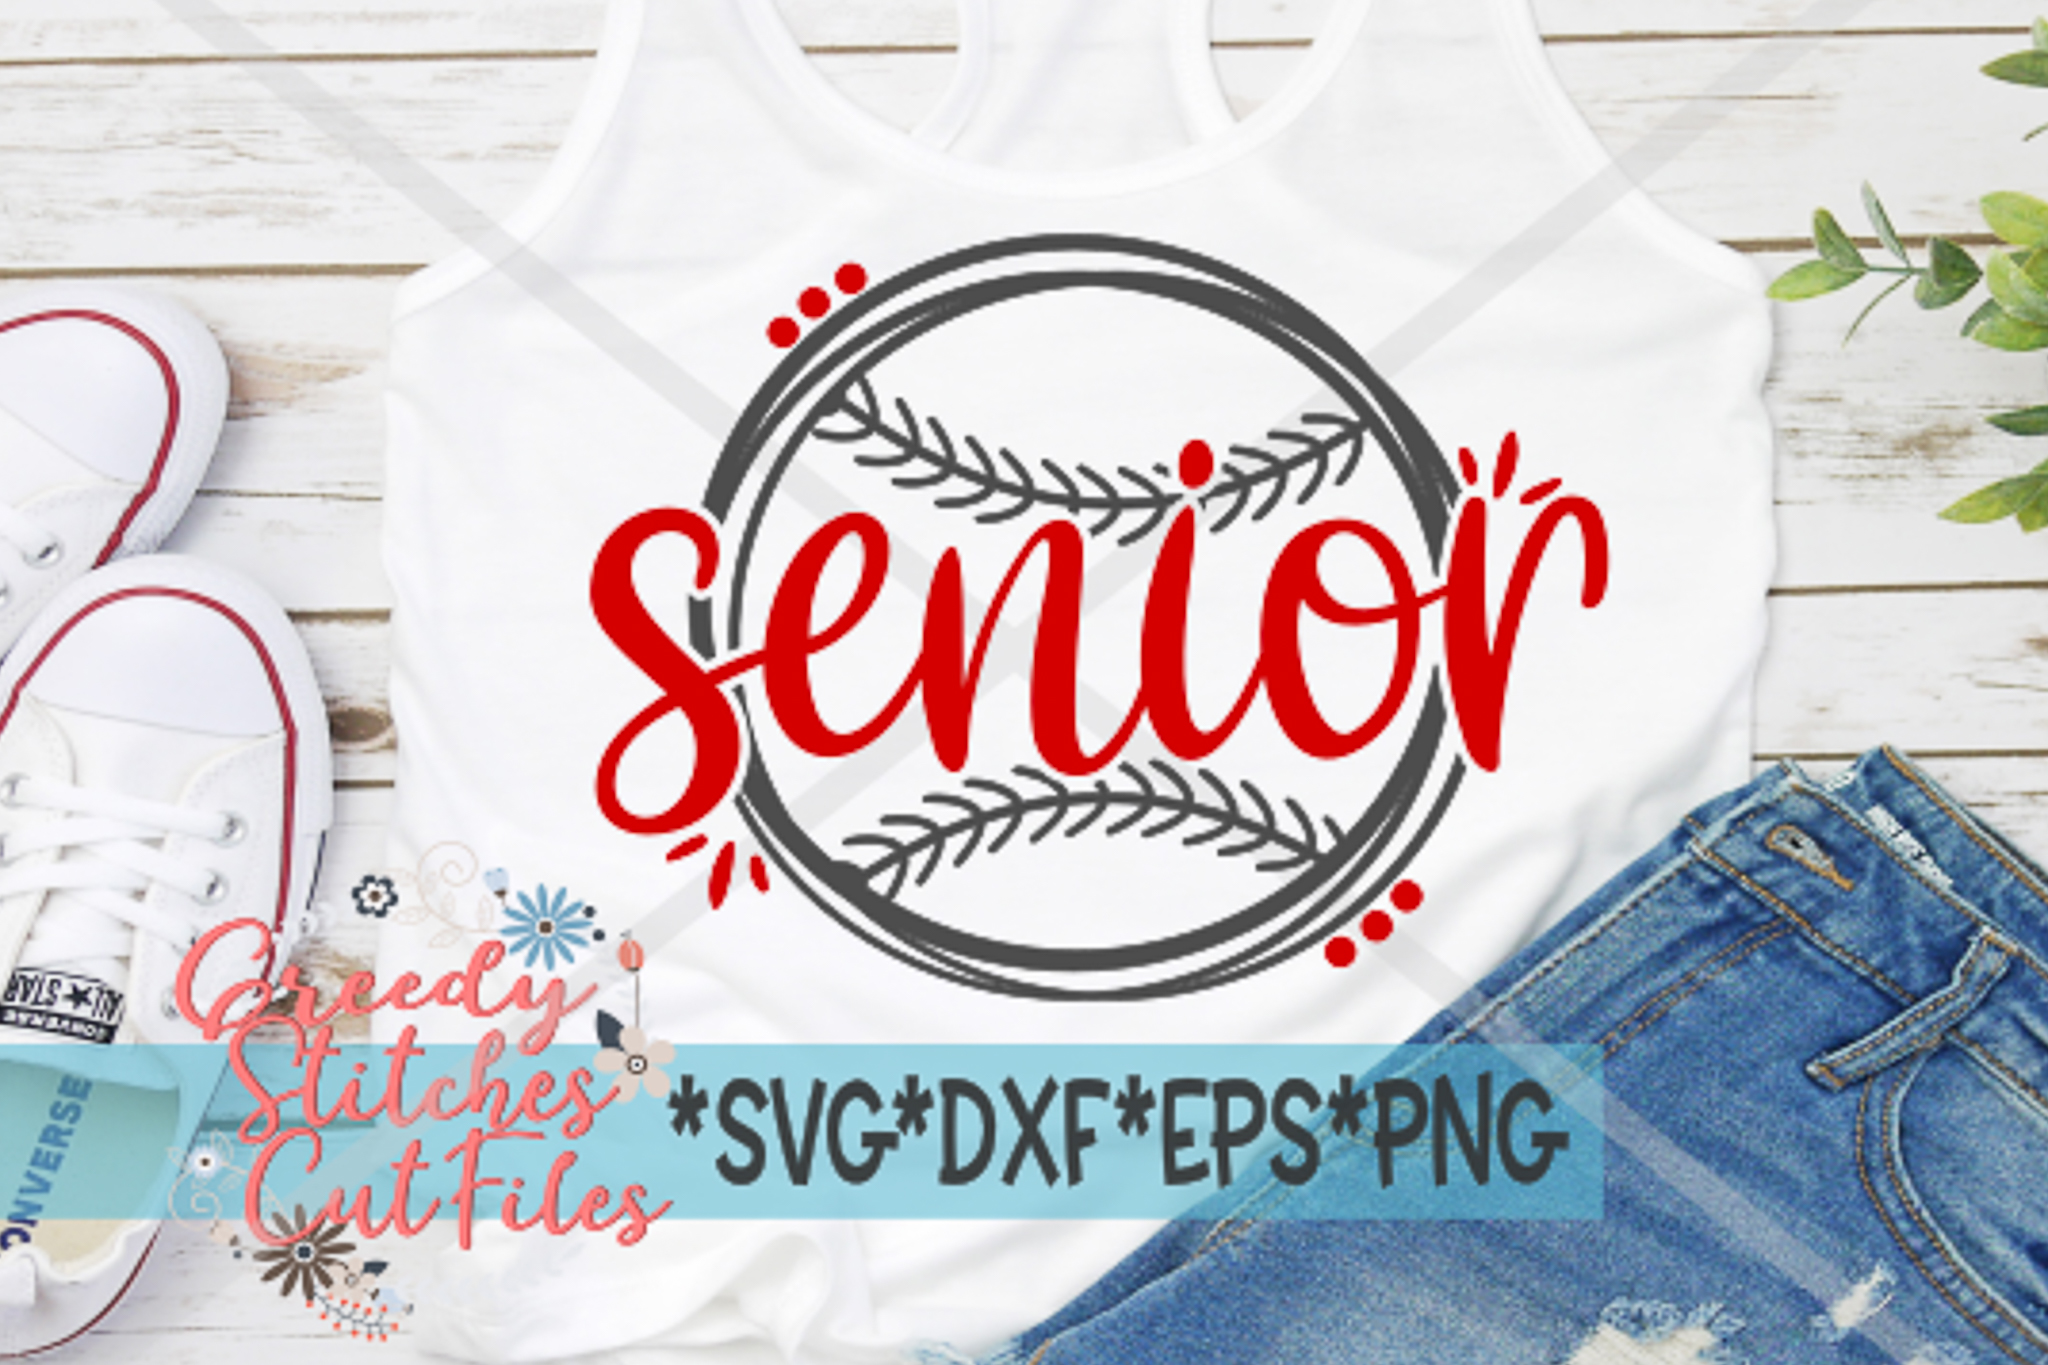 Senior Softball SVG, DXF, EPS, PNG Files example image 3